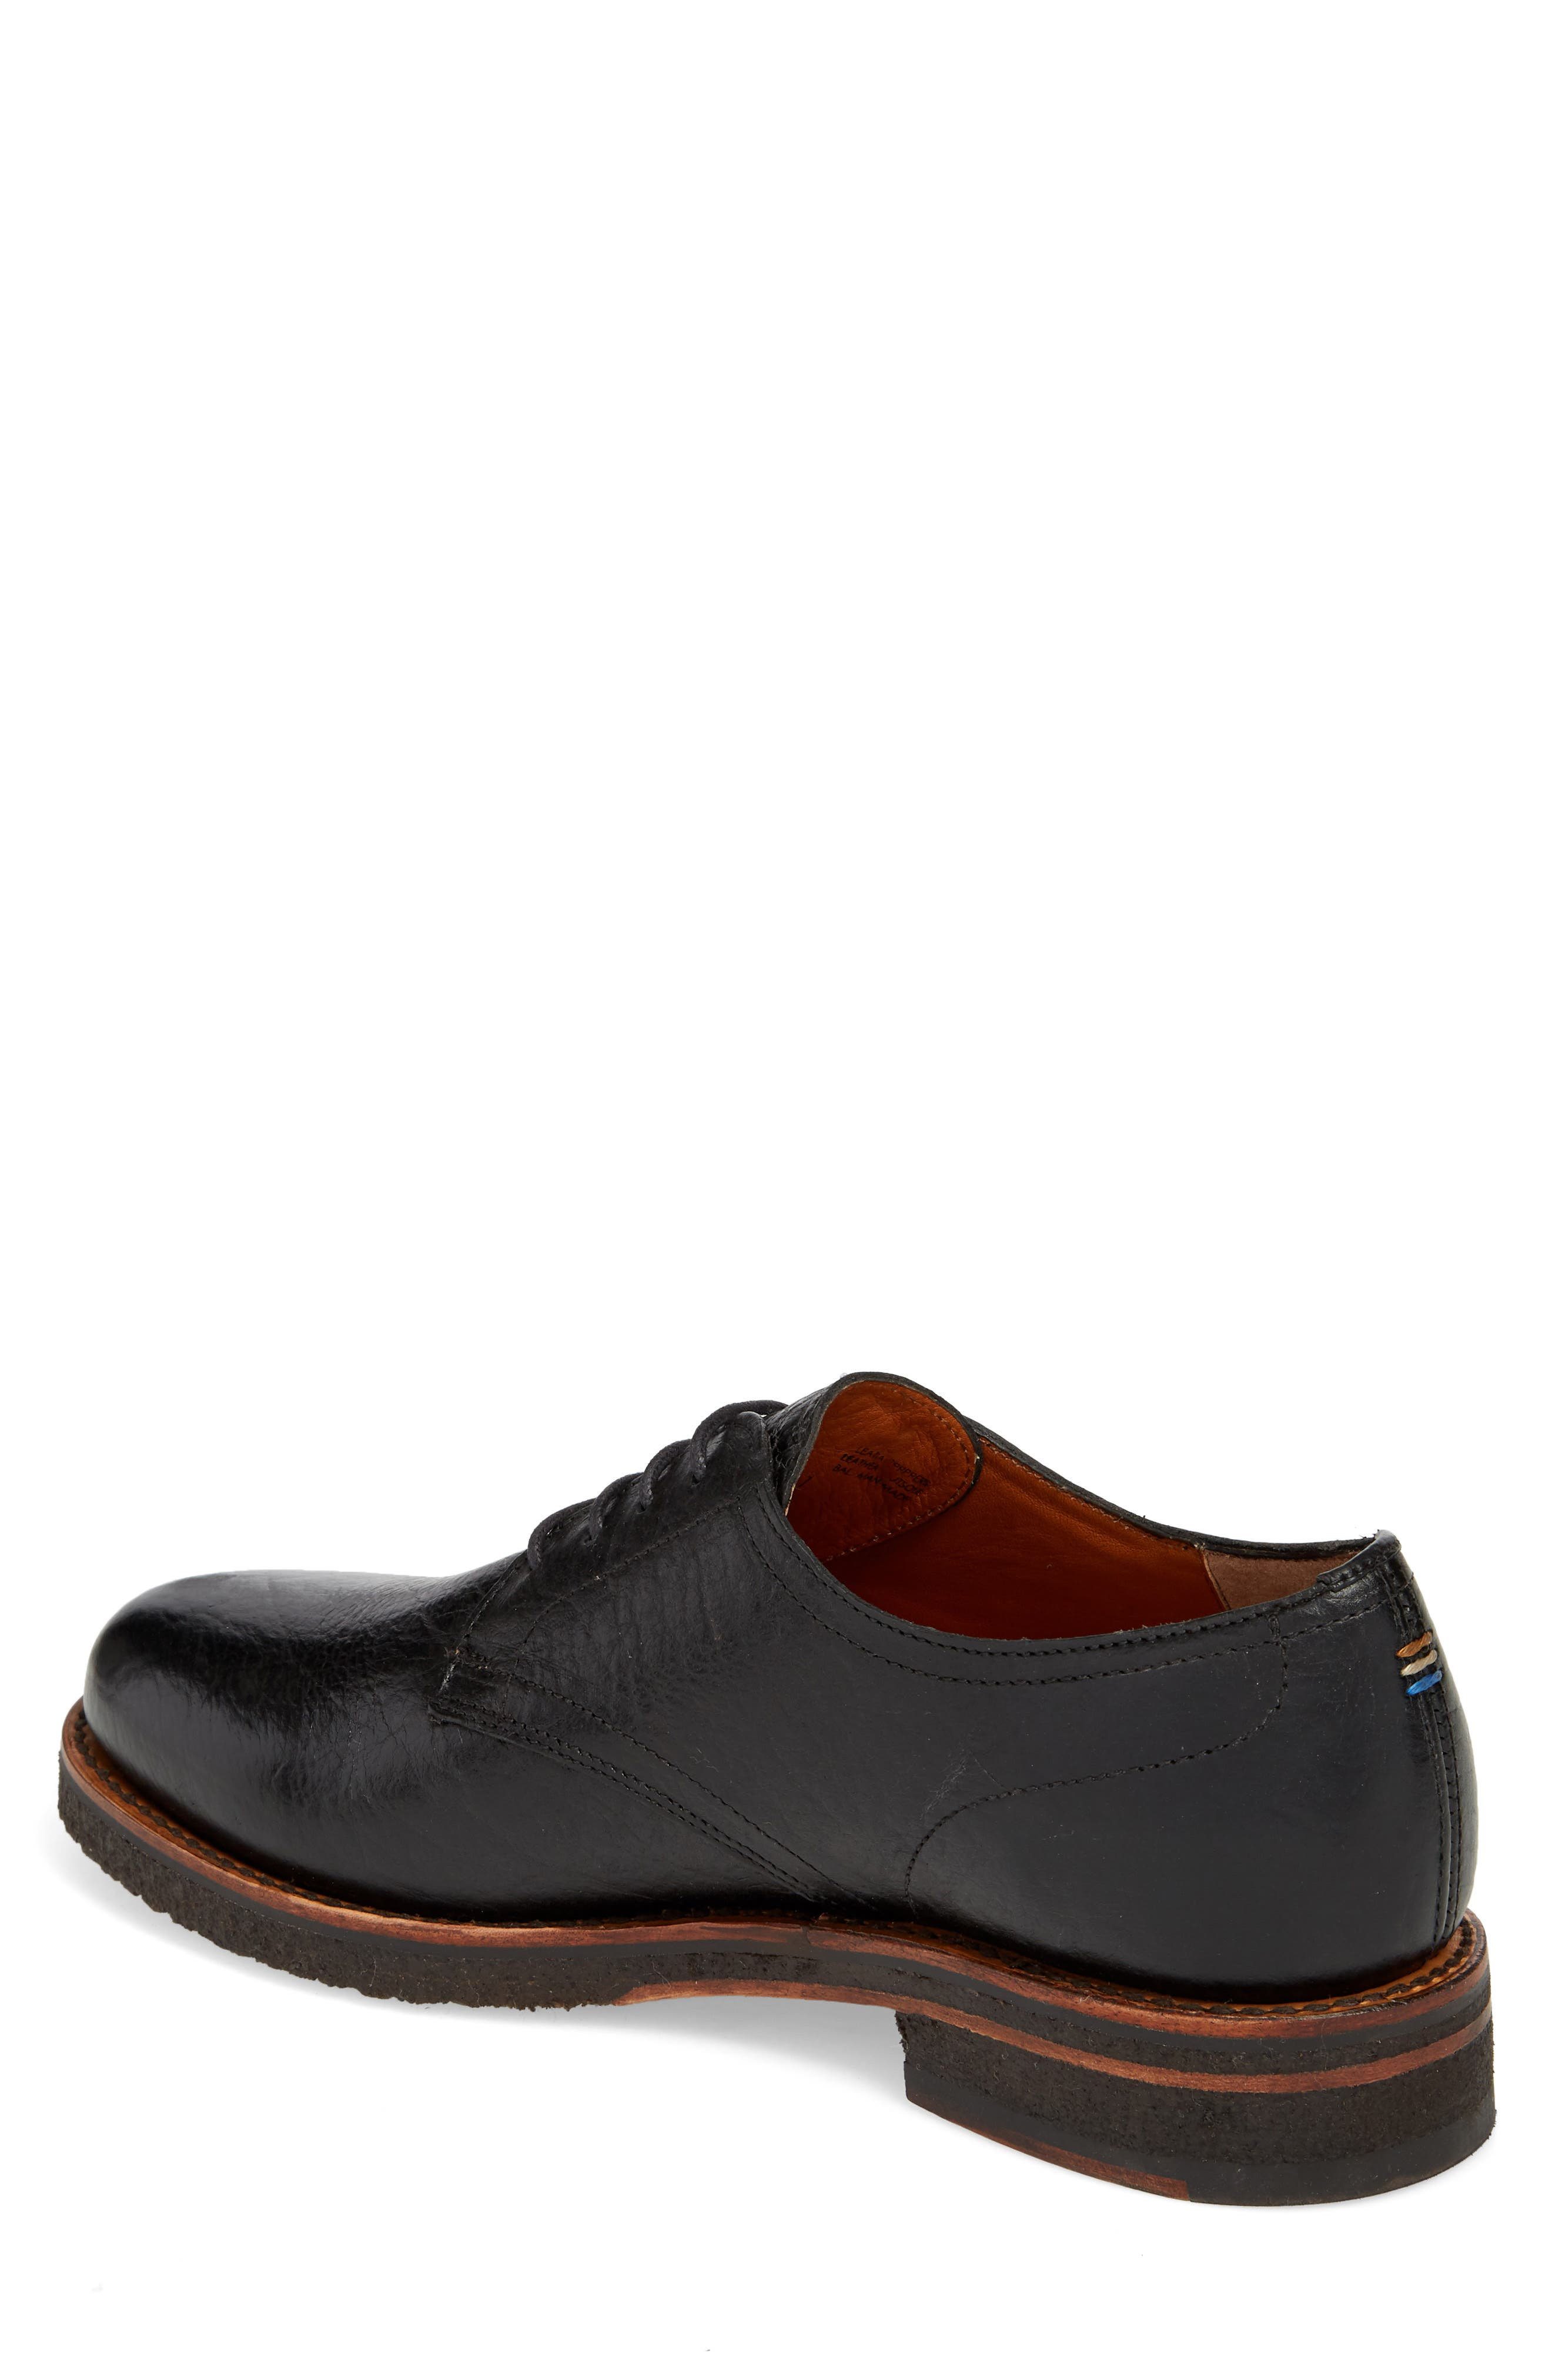 Two24 by Ariat Hawthorne Plain Toe Derby,                             Alternate thumbnail 2, color,                             001